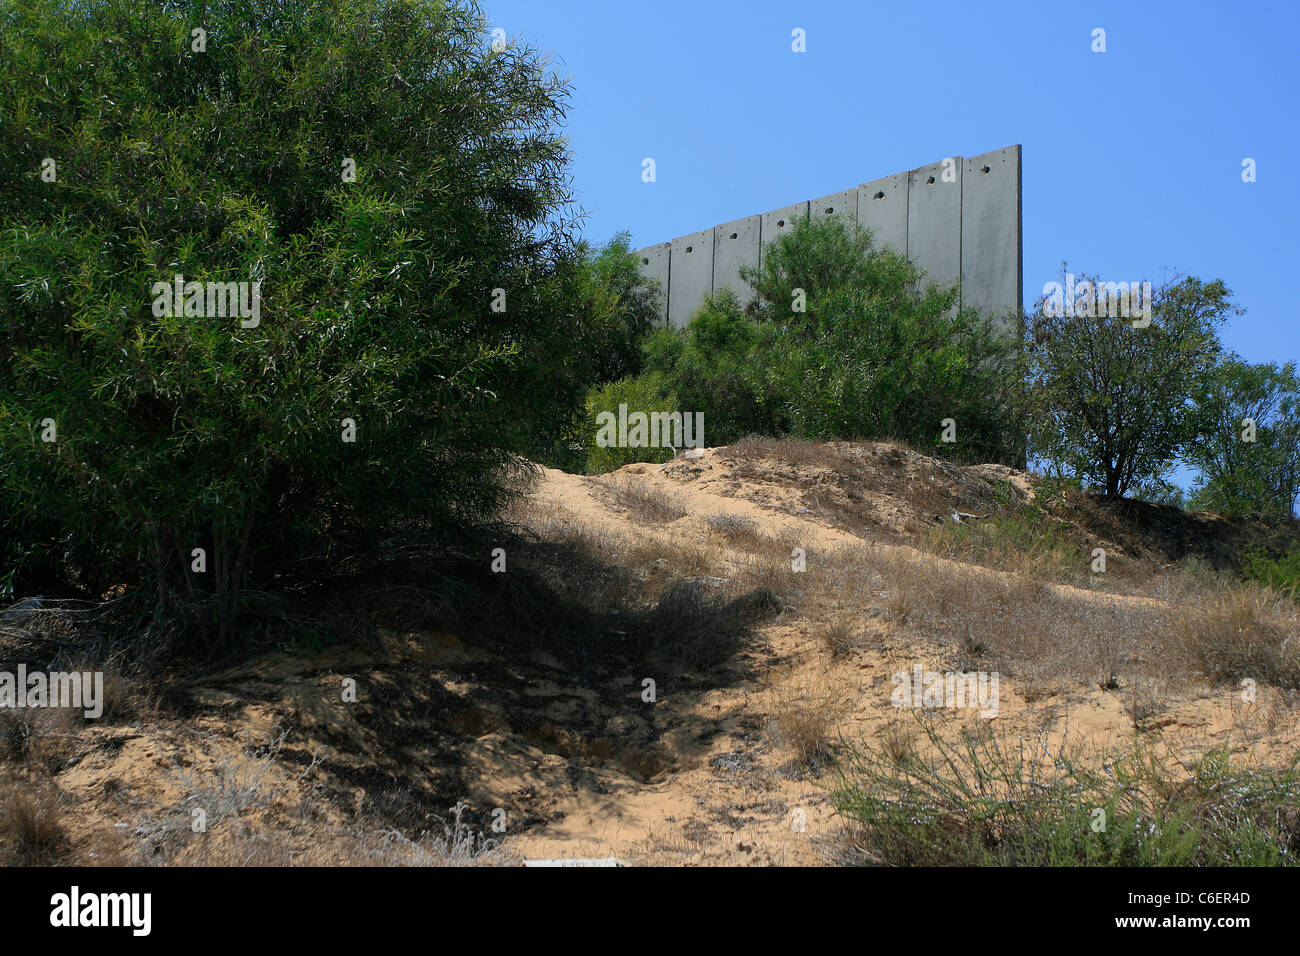 A piece of the wall which marks the border between Gaza strip and Israel. - Stock Image